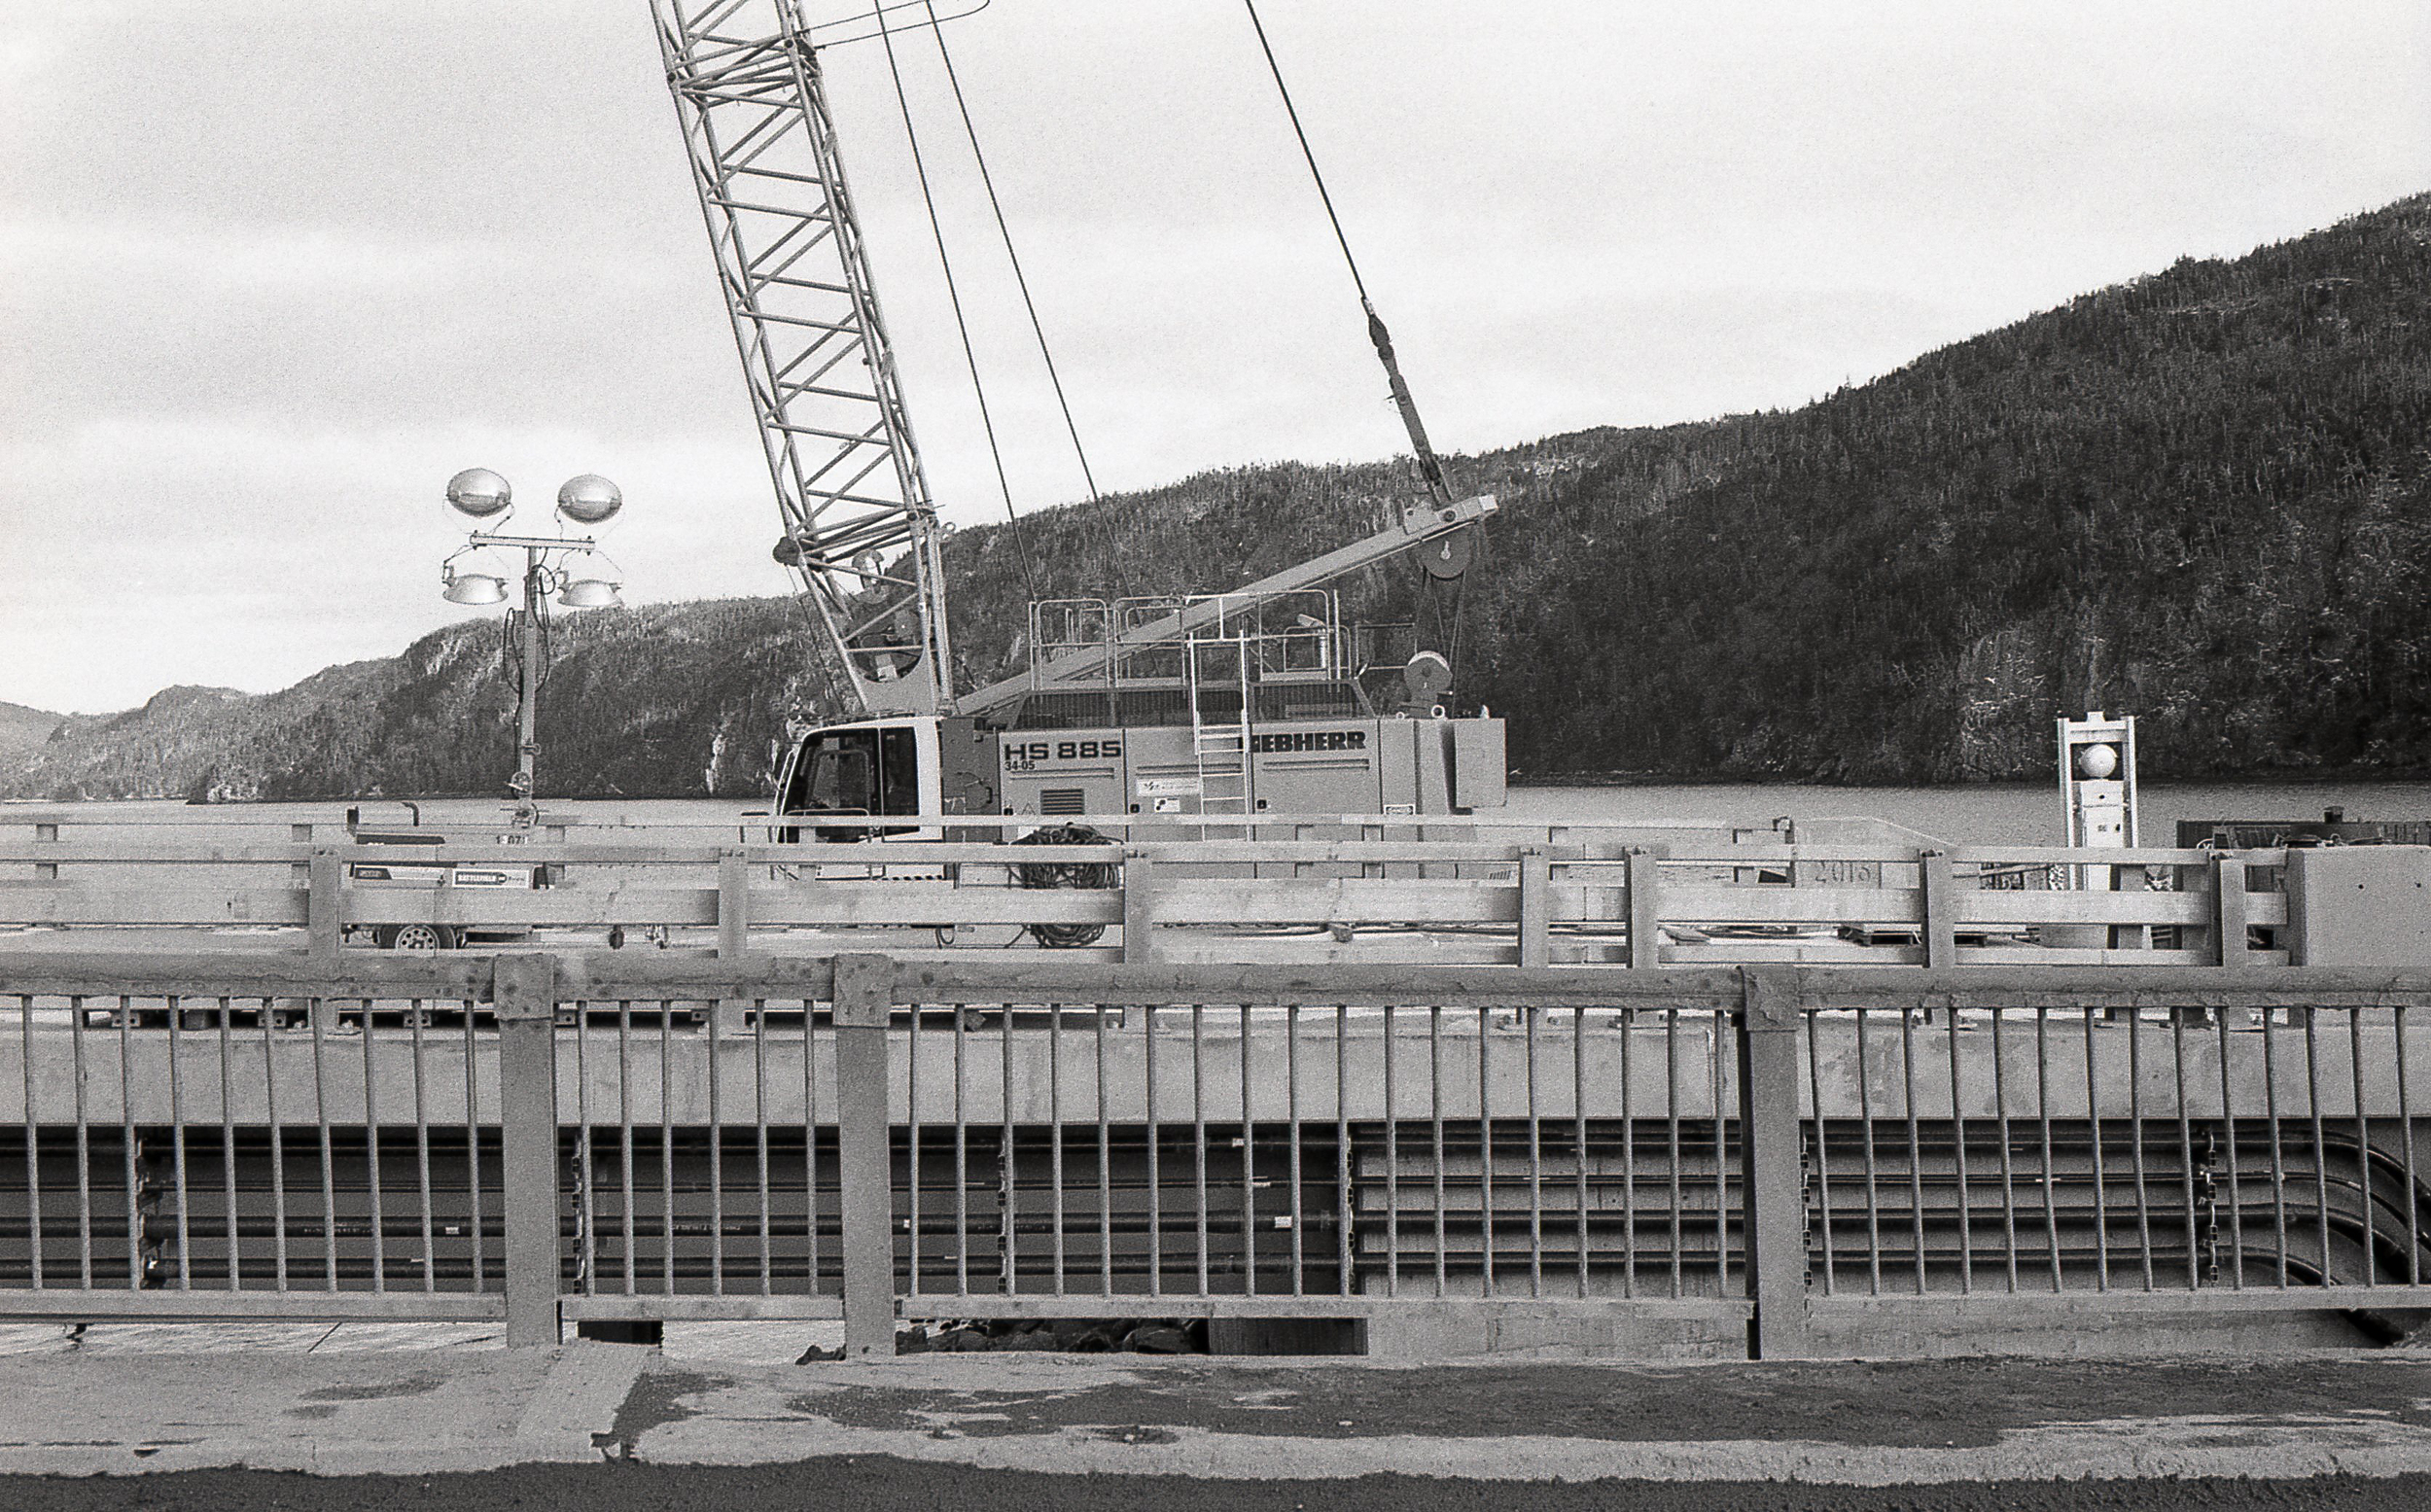 View of the construction of the new bridge taken from the old bridge looking towards the inner harbour.